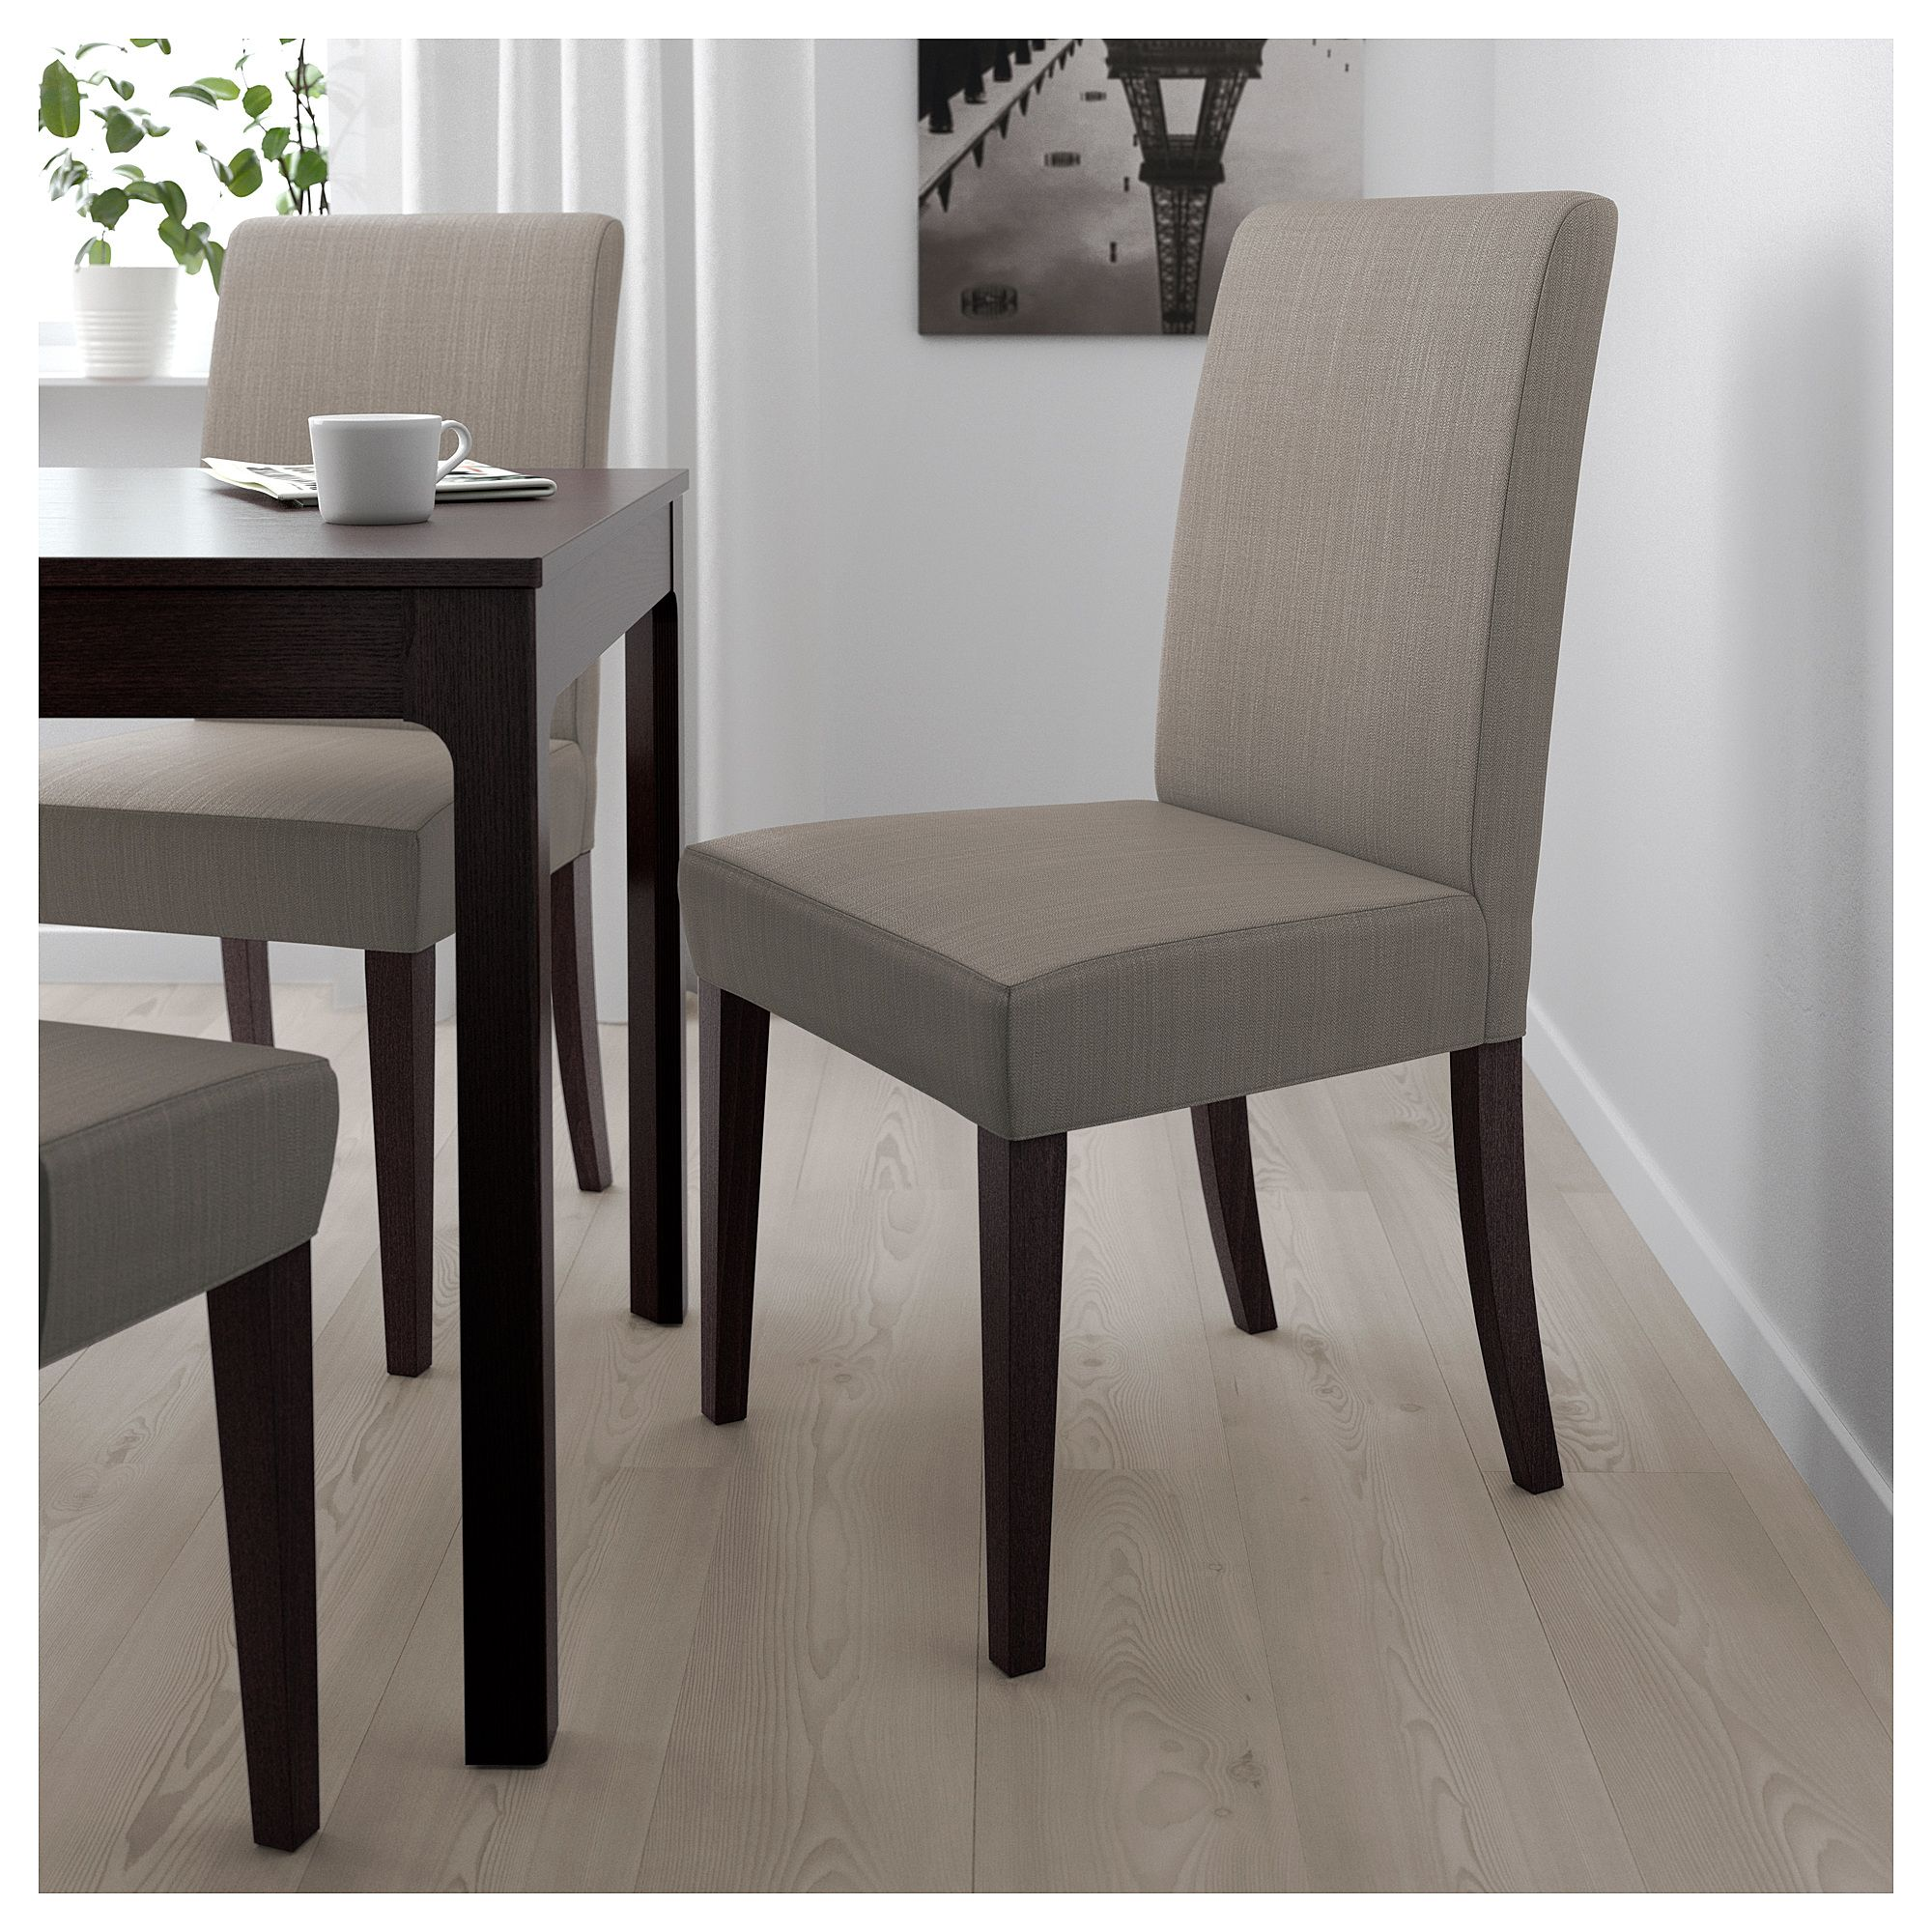 Furniture and Home Furnishings | Ikea dining chair, Chair